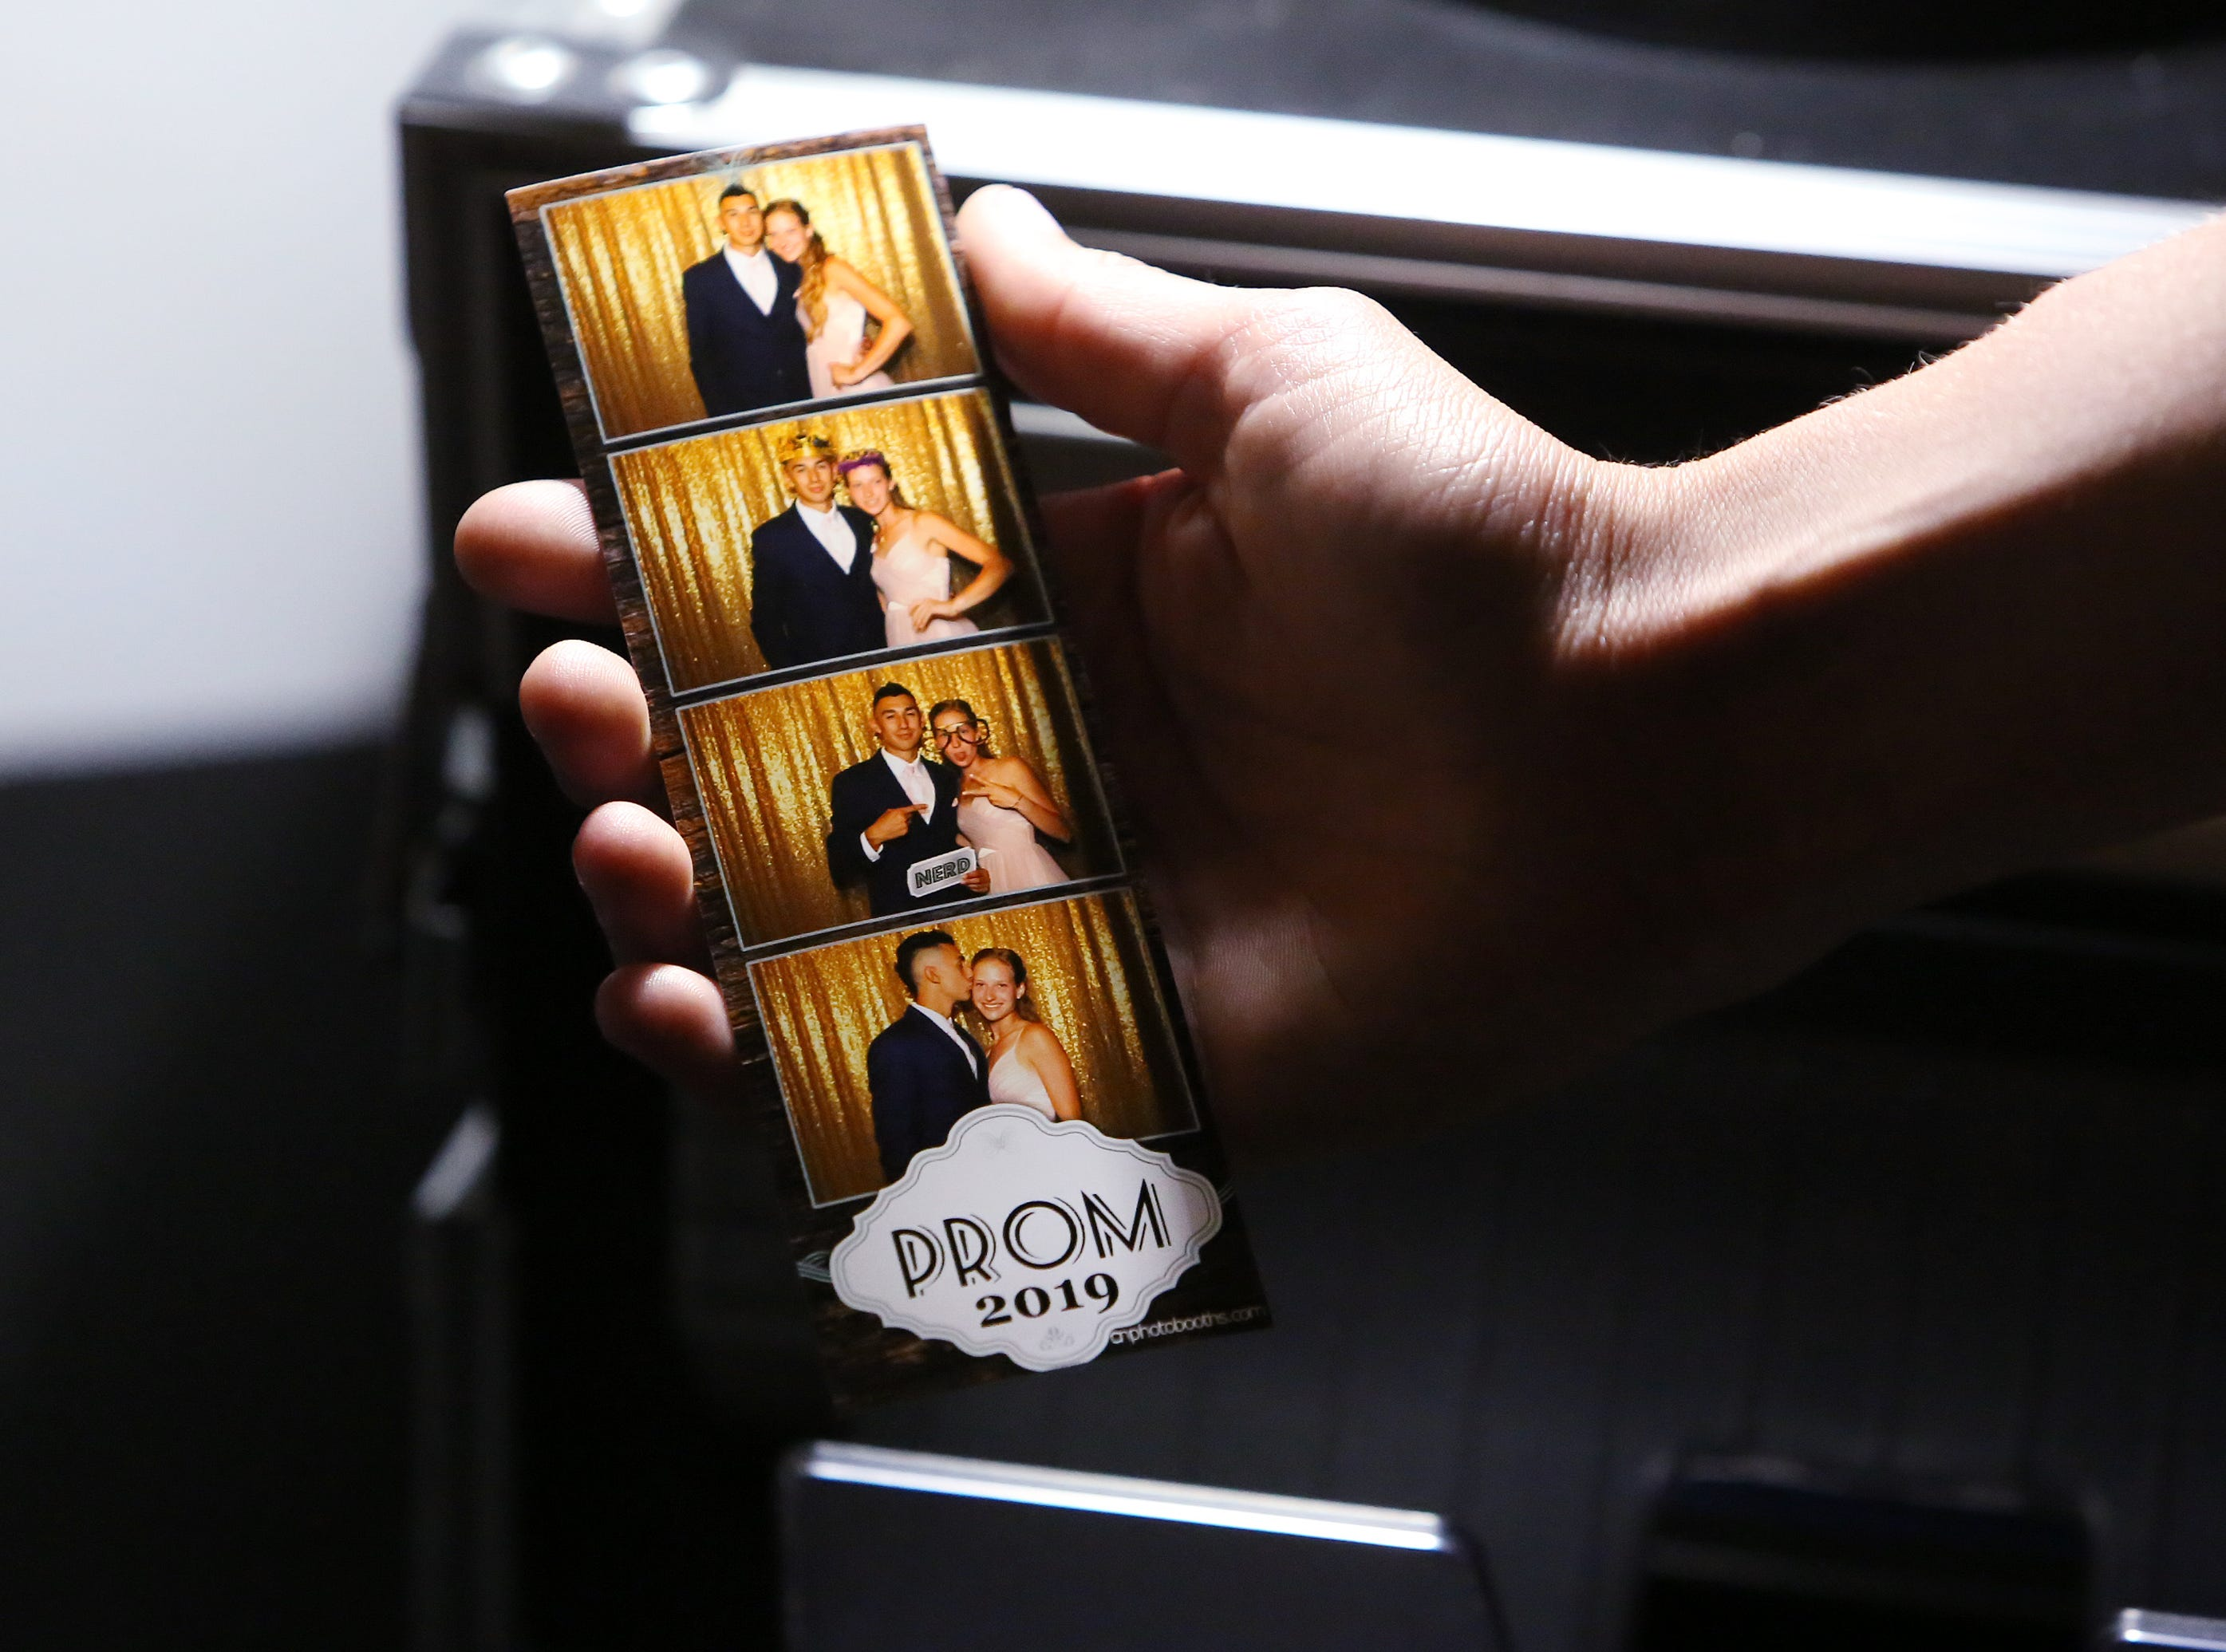 Julia Nelson and Jaykob Acosta share a fun moment at the photo booth at this year's Exeter Union High School prom Saturday, May 4, 2019 in Woodlake, Calif.